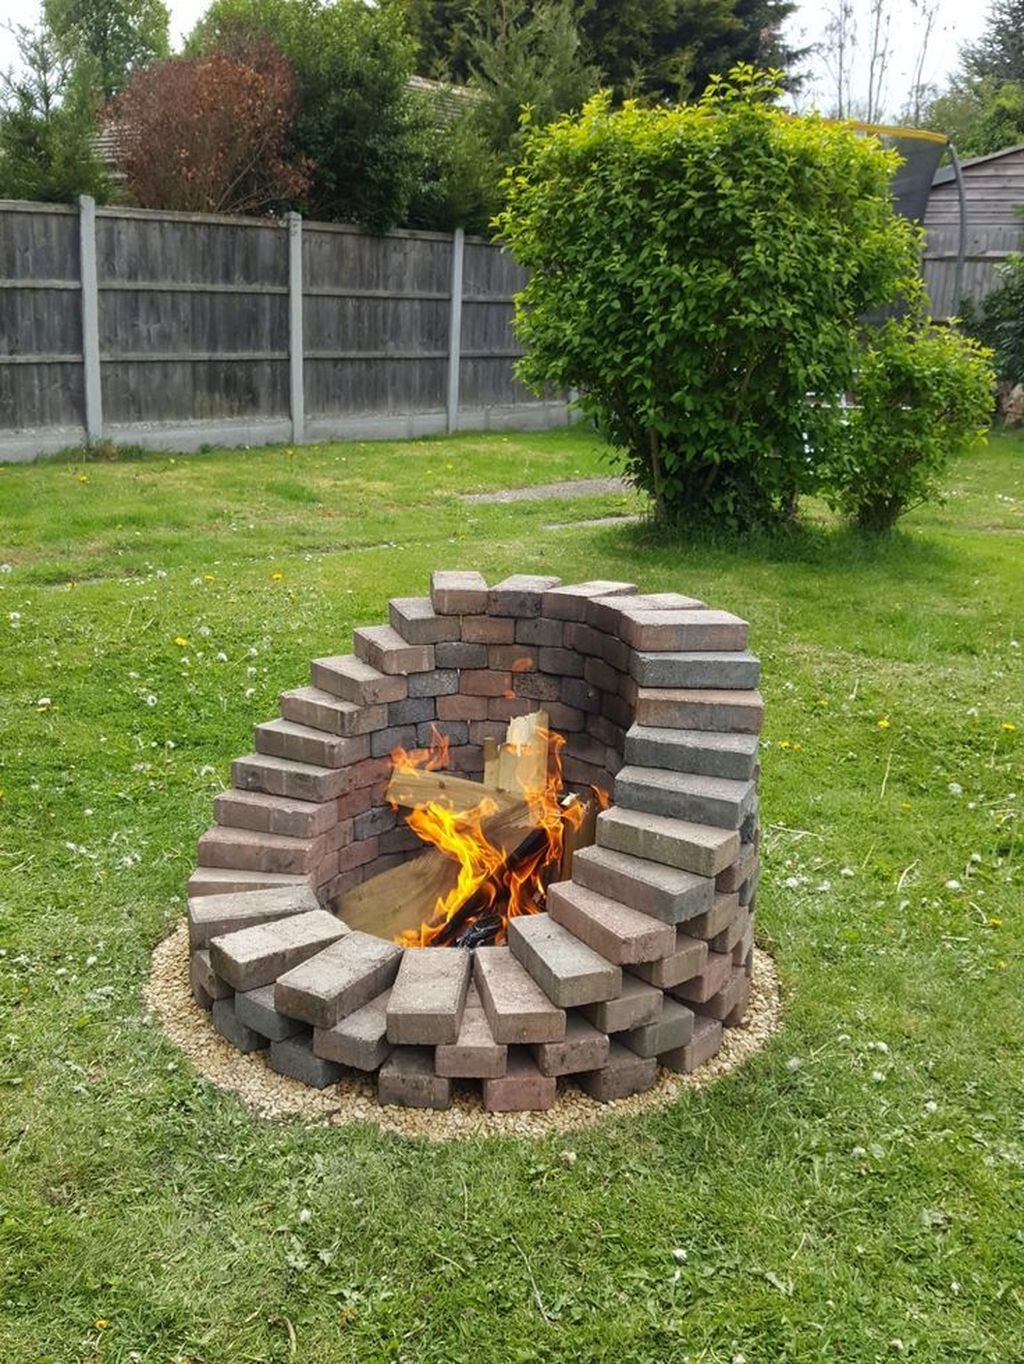 31 Fabulous Stone Fire Pit Design And Decor Ideas ... on Garden Ideas With Fire Pit id=62242